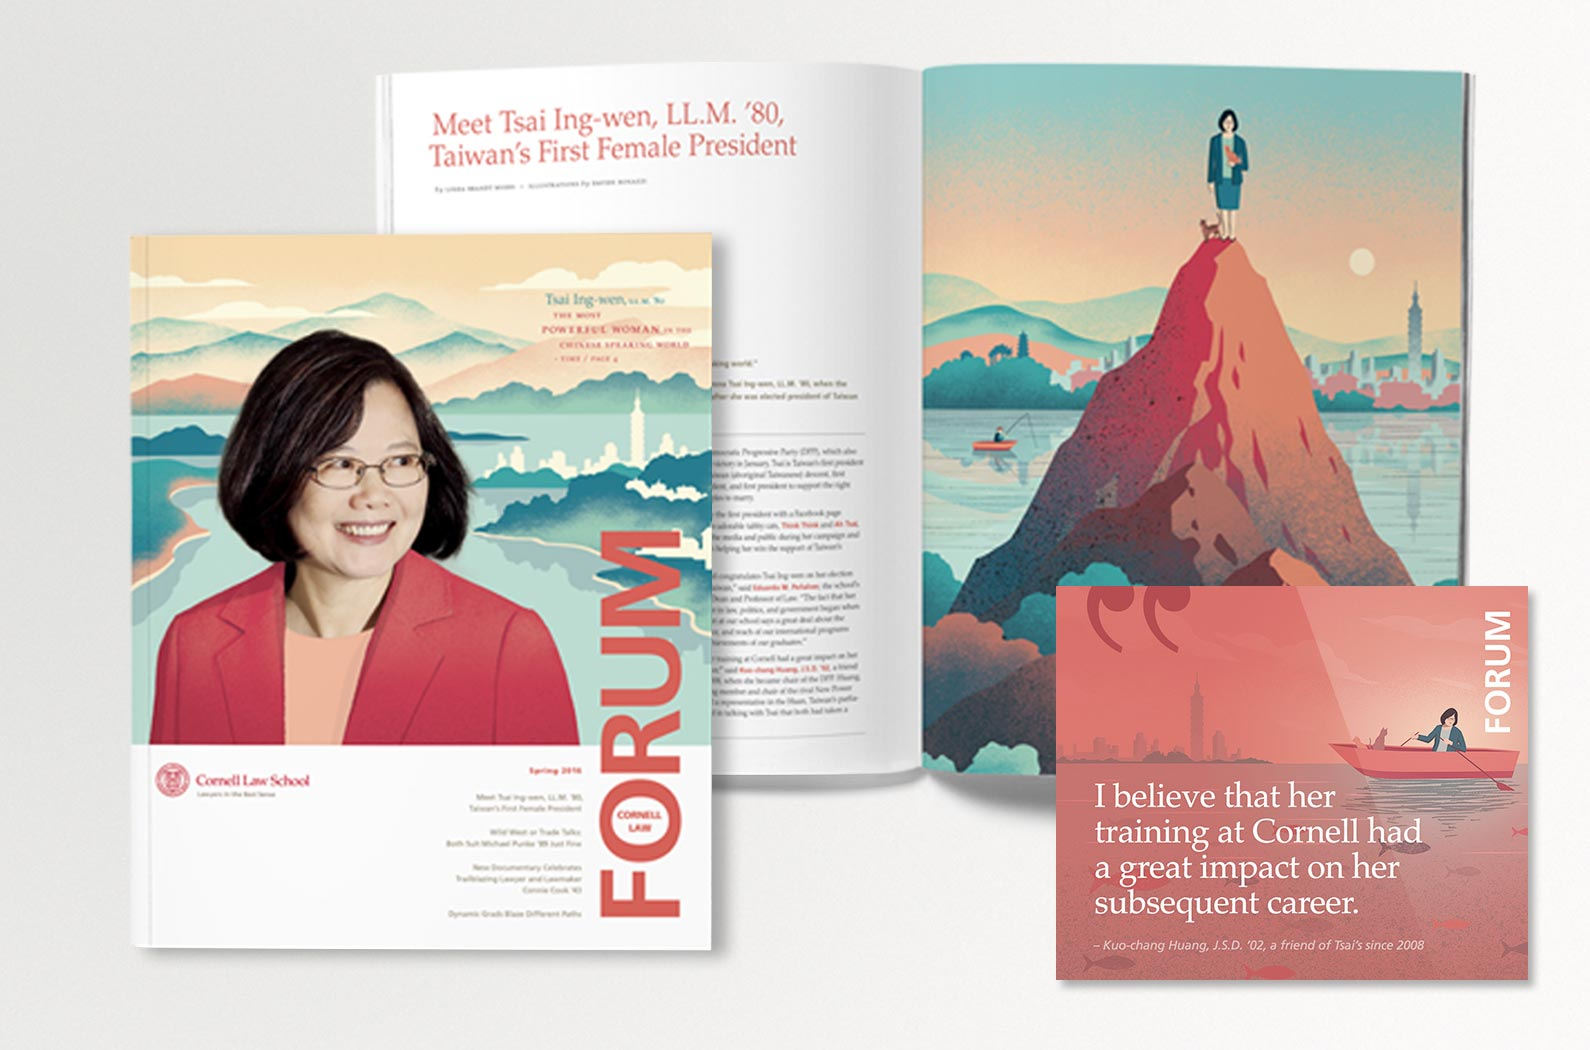 Cornell Law School FORUM Magazine Tsai Ing-wen Cover and Feature Article